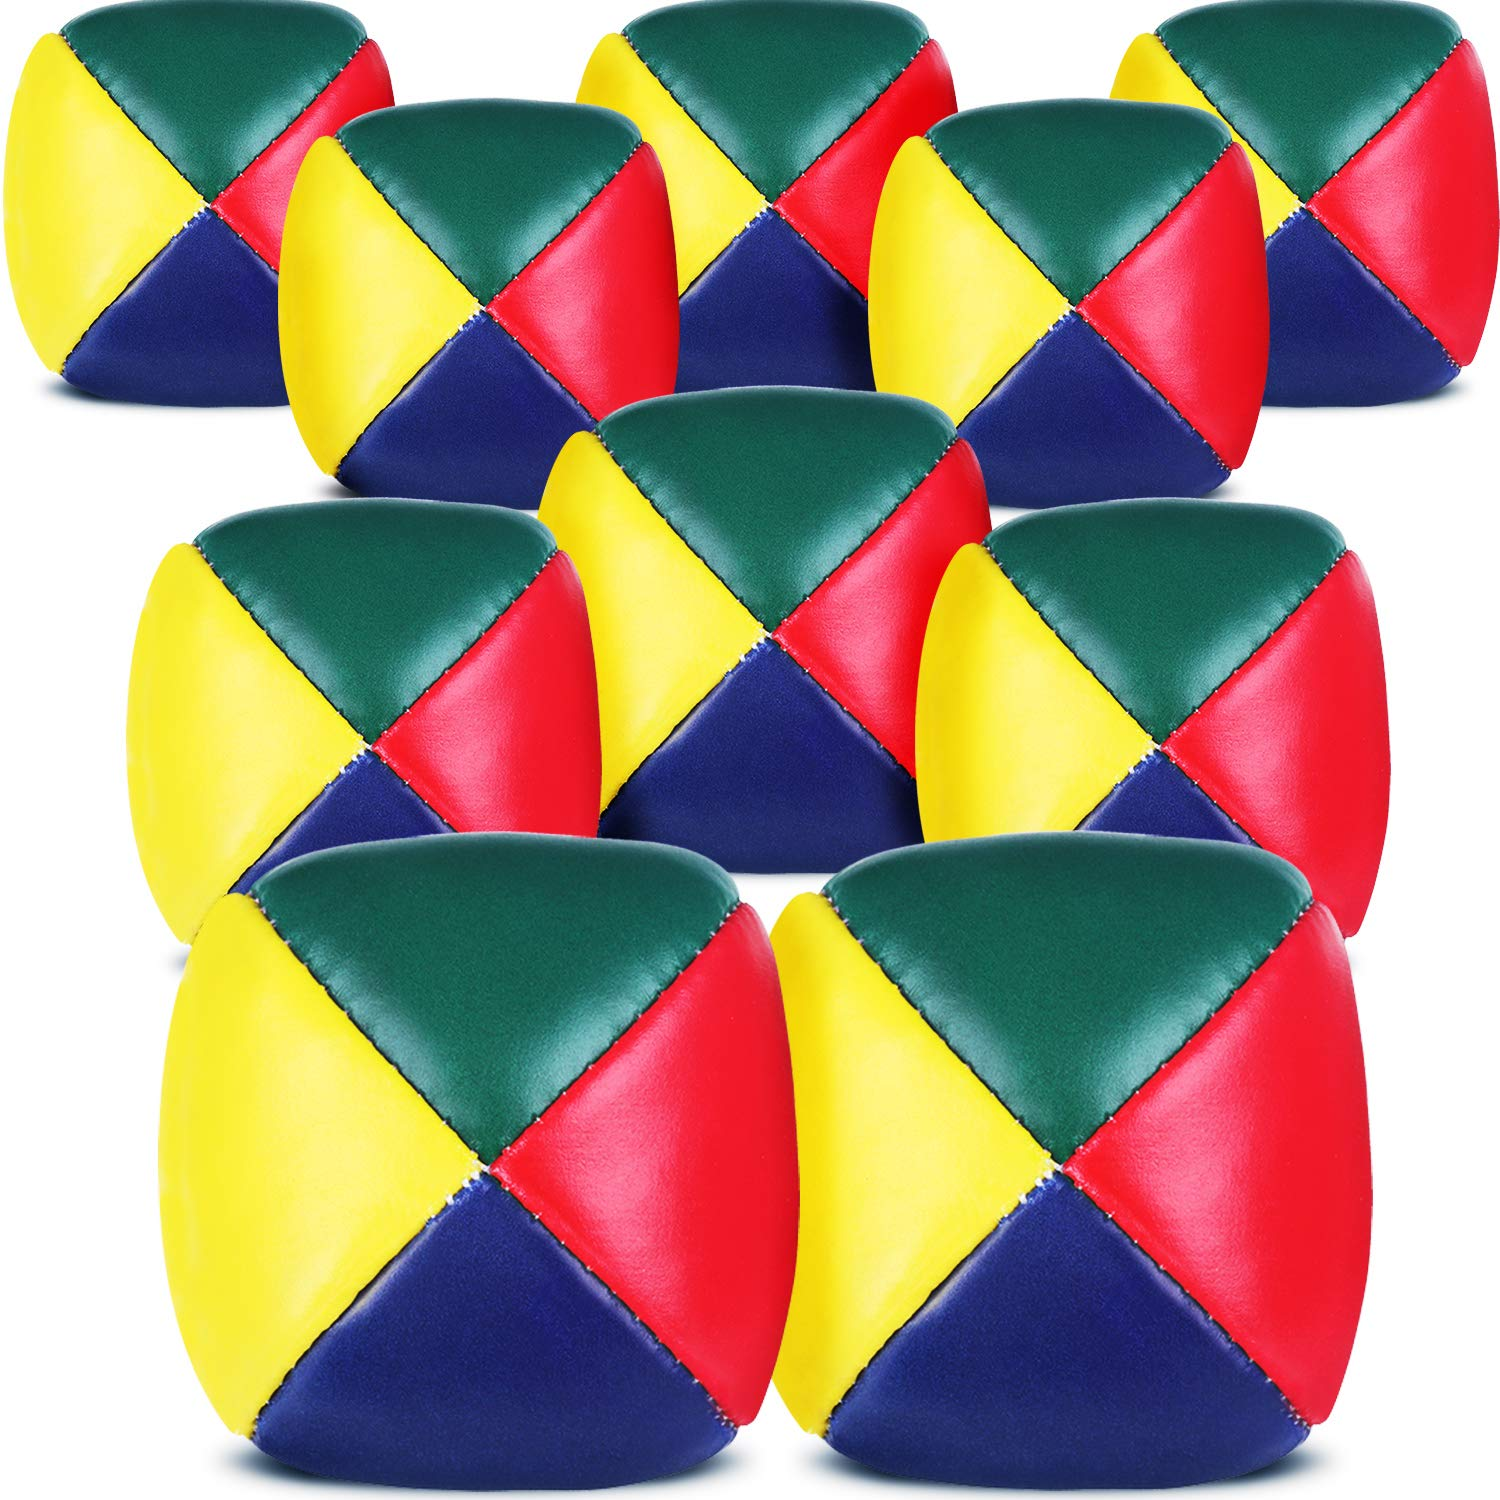 Patelai Juggling Balls Set for Beginners, Quality Mini Juggling Balls, Durable Juggle Ball Kit, Soft Easy Juggle Balls for Boys Girls and Adults, Multicolored (10 Packs) by Patelai (Image #1)